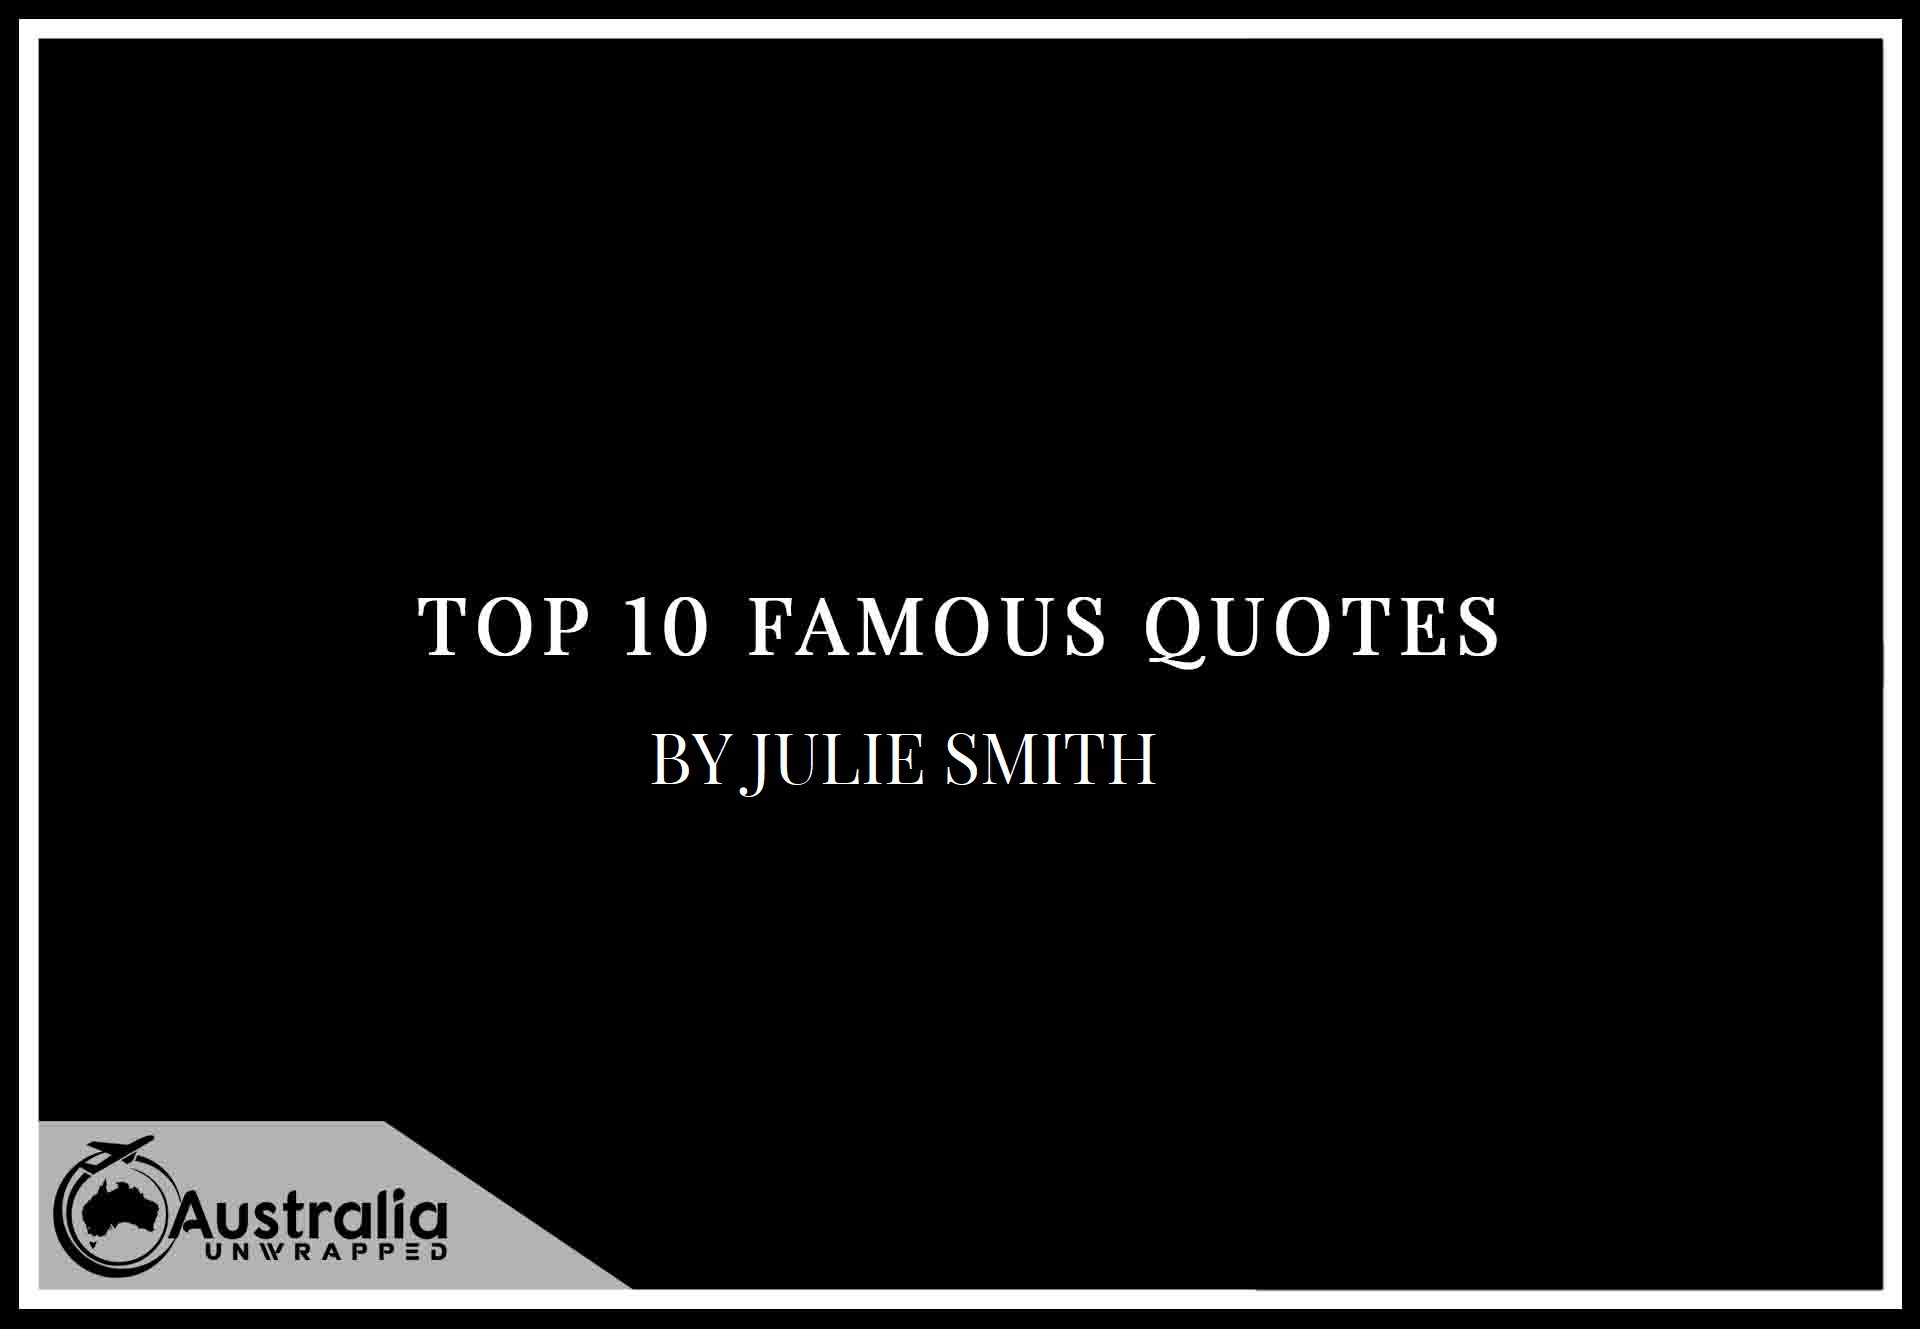 Top 10 Famous Quotes by Author Julie Smith